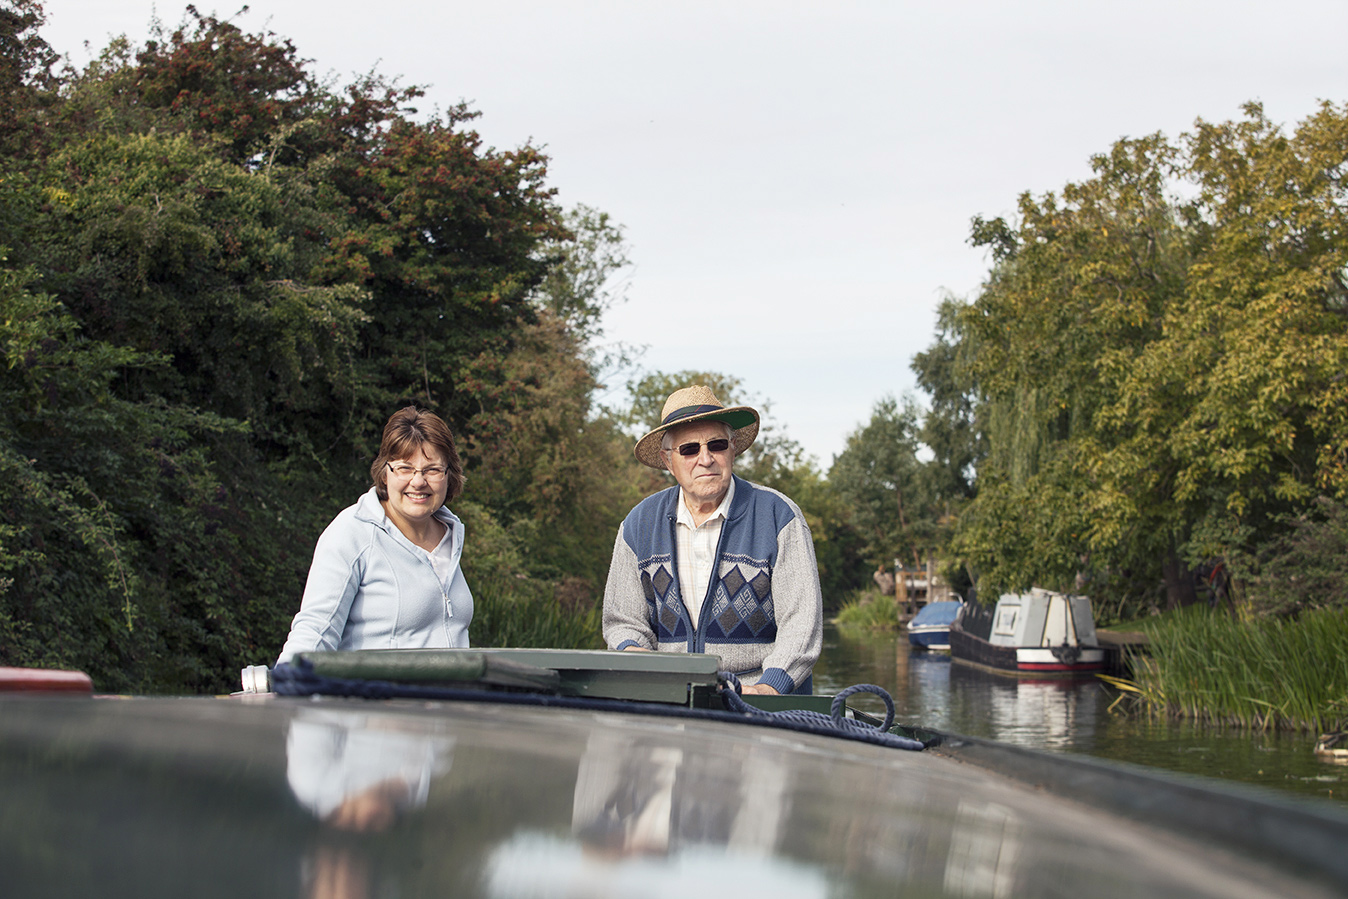 mothers day idea cambridge boat hire